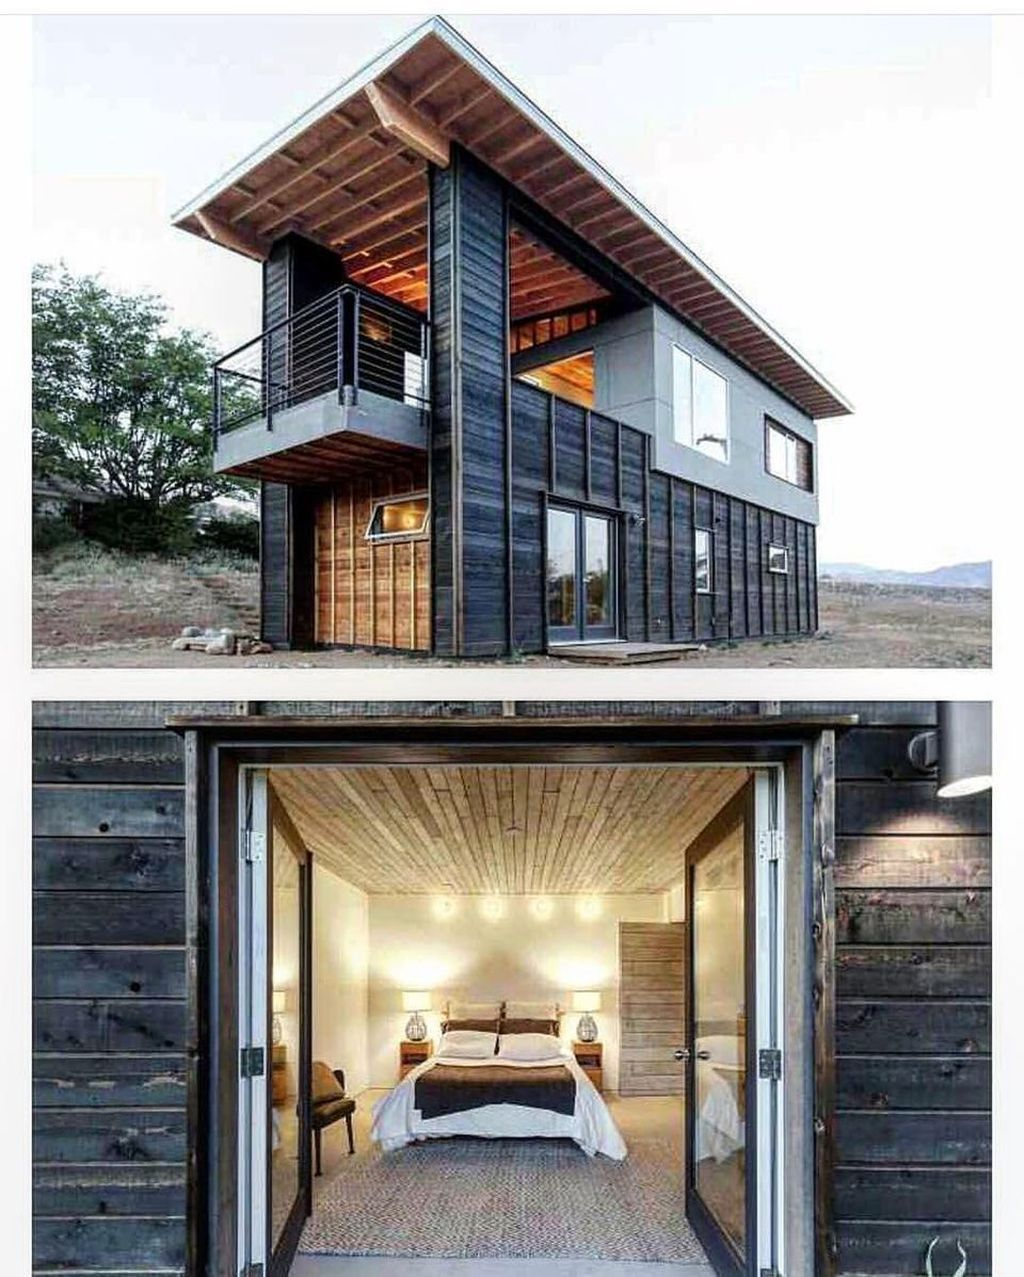 Container Home Design Ideas: Pin By Acarnania Decor On Home Decor